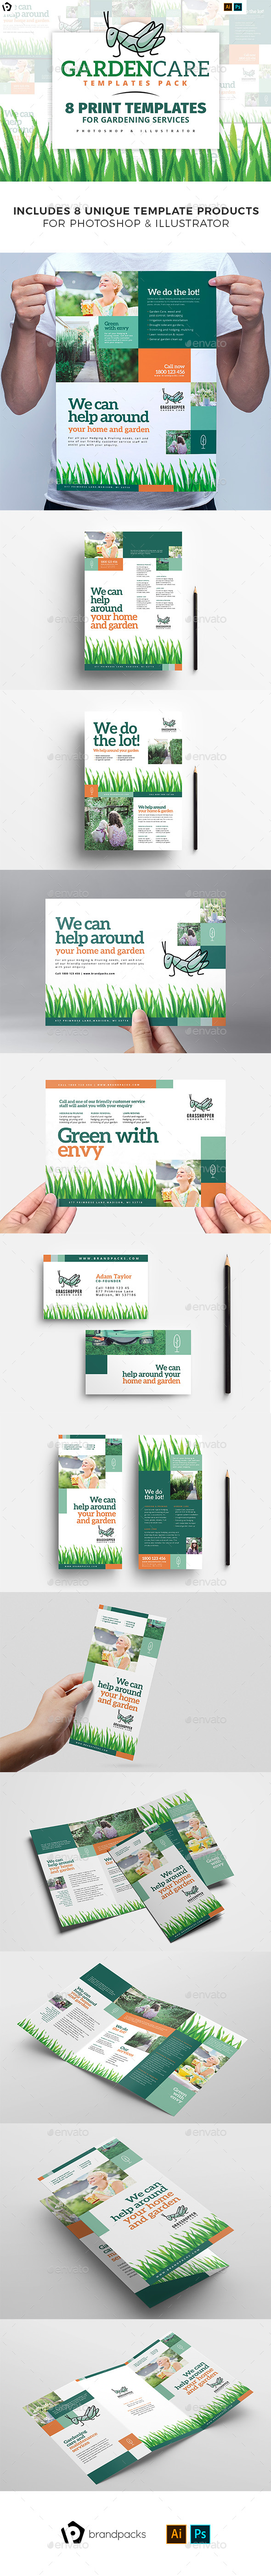 Gardening Service Templates Bundle - Corporate Flyers